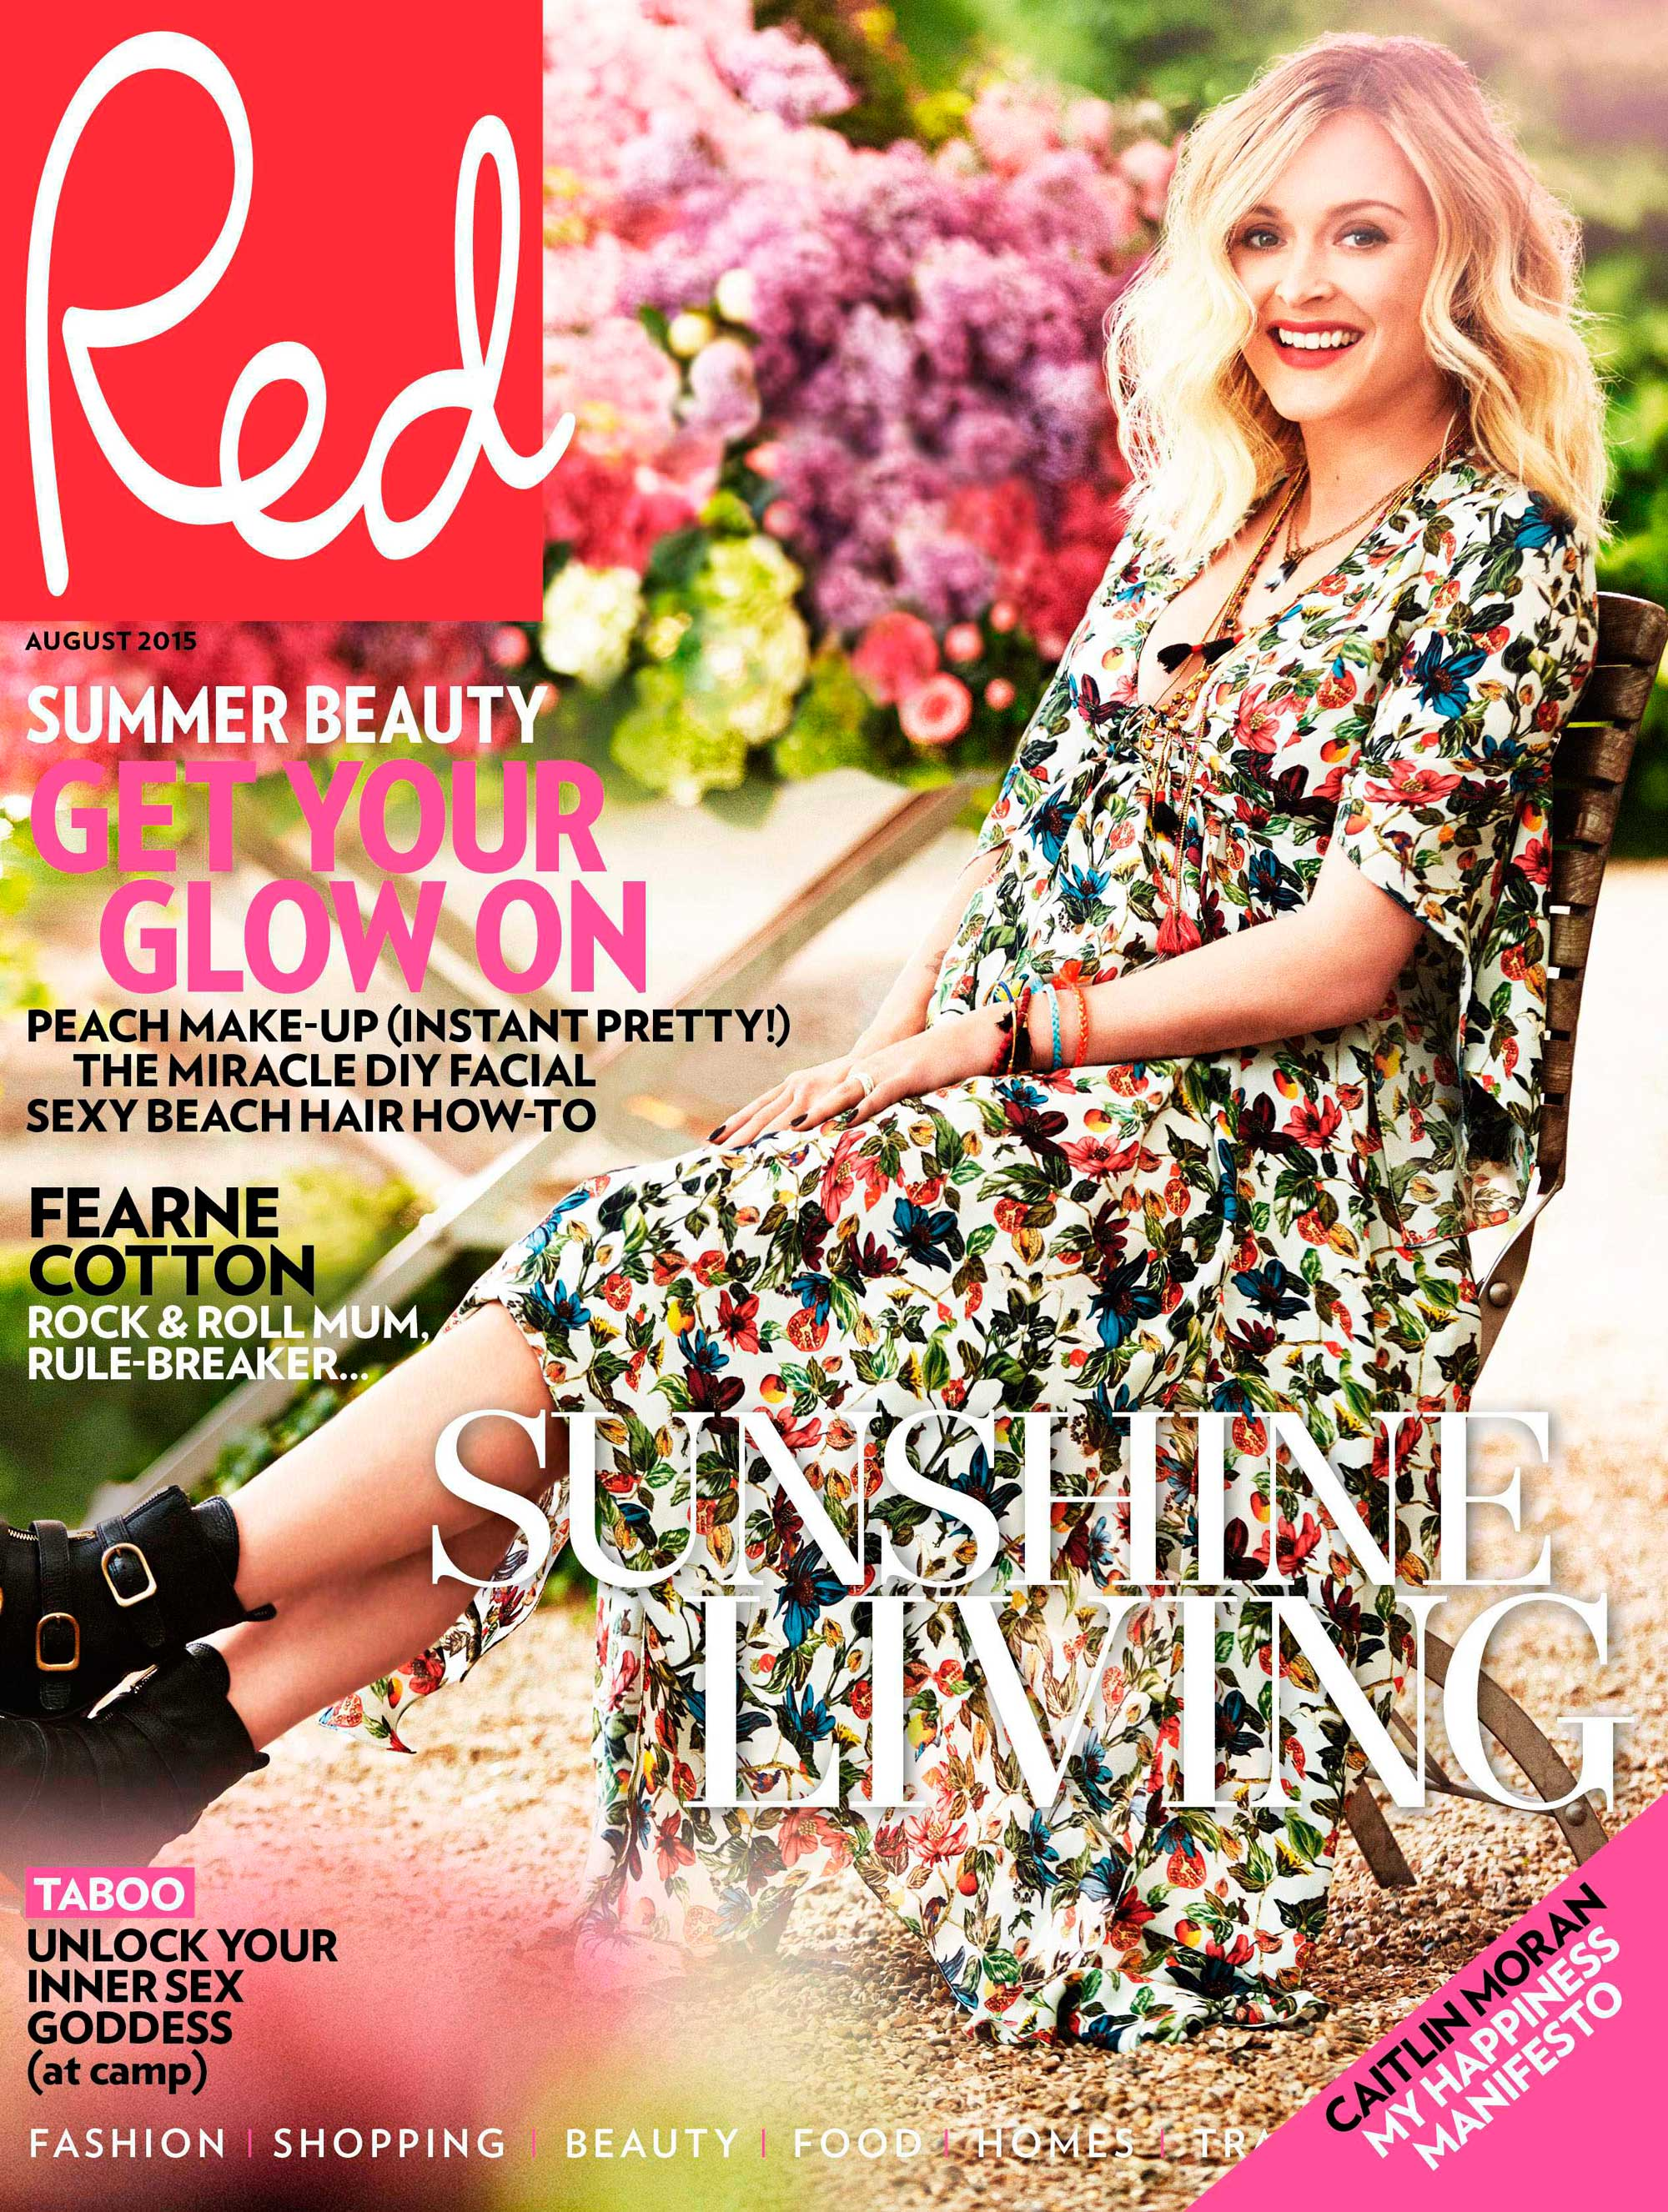 Subscribe to Red today and get 6 issues for just £9.99